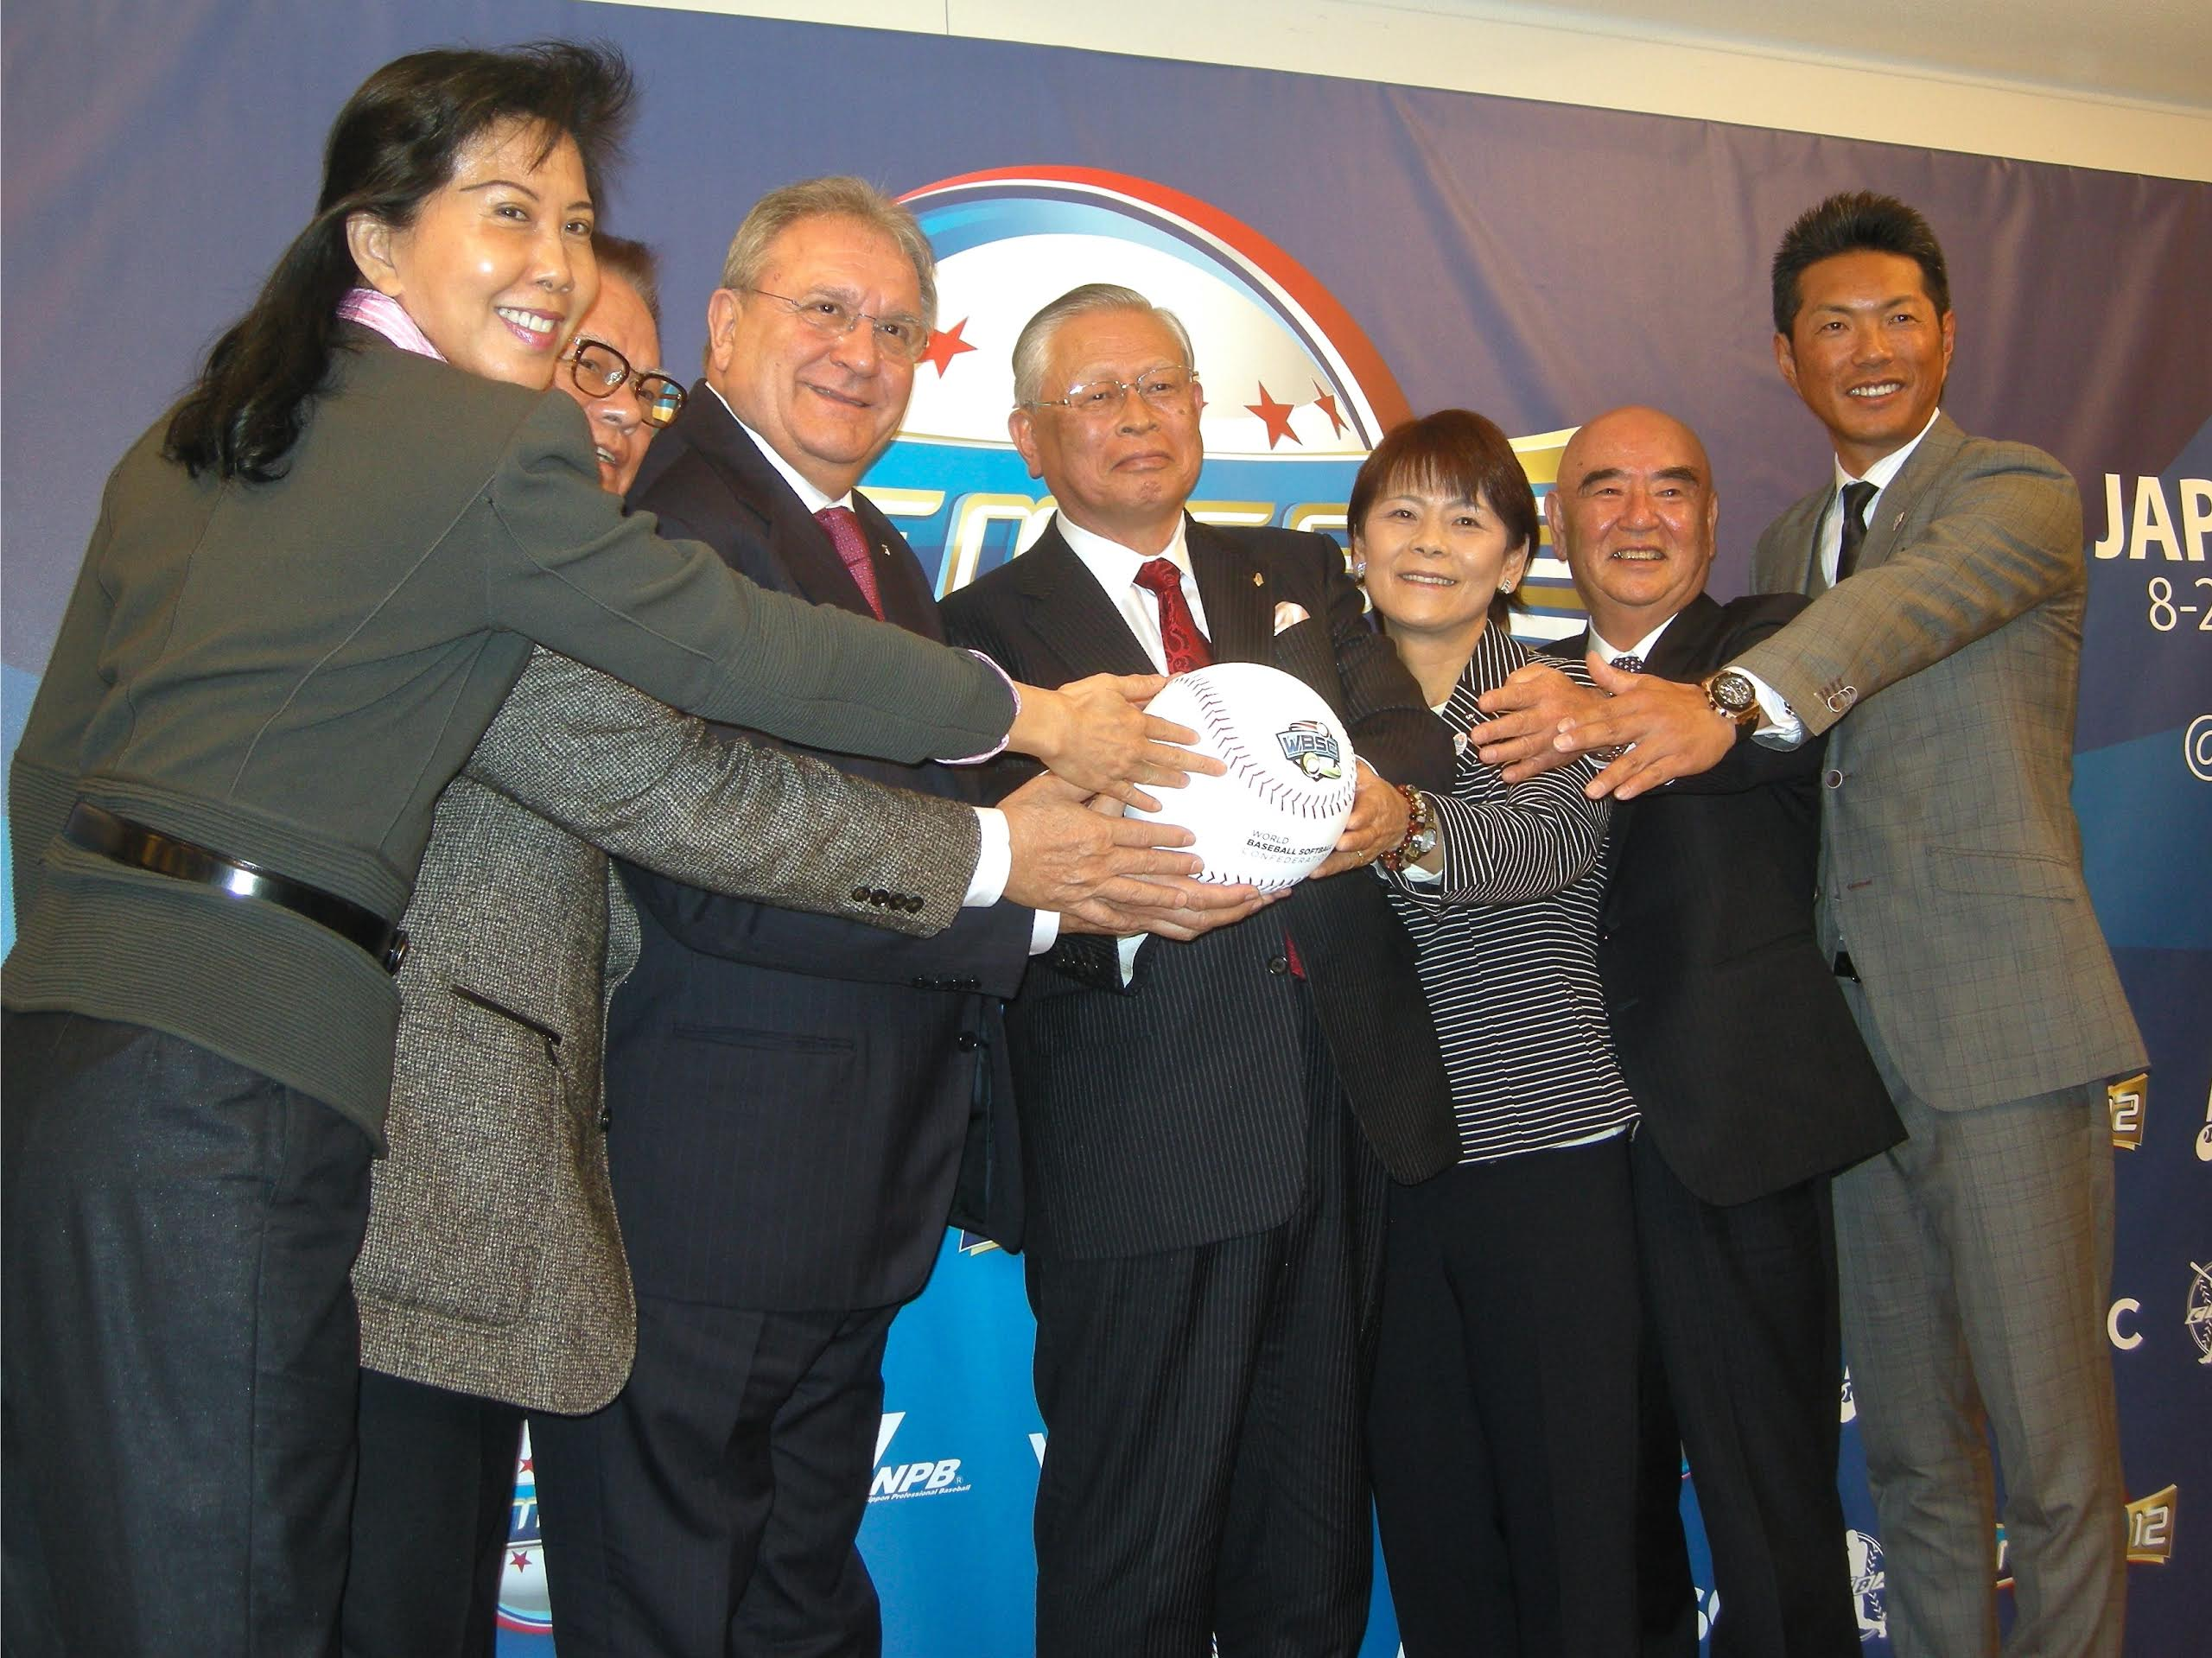 All together now: WBSC president Riccardo Fraccari (third from left) poses for a photo with other baseball officials and Samurai Japan manager Hiroki Kokubo (far right) during a news conference to announce details about the 2015 Premier 12 on Monday.   KAZ NAGATSUKA